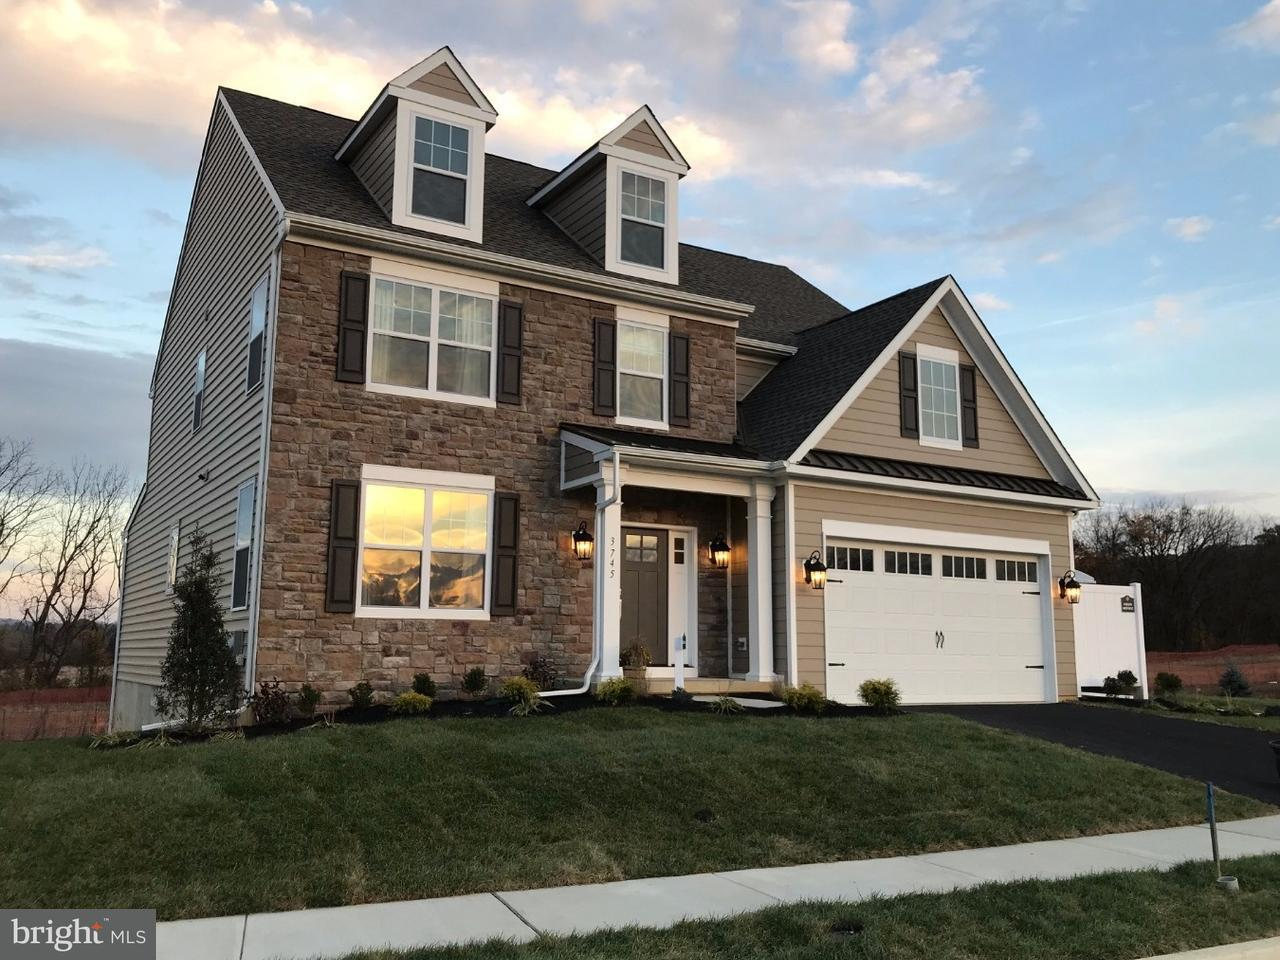 Single Family Home for Sale at 3700 SWABIA Court Macungie, Pennsylvania 18062 United States